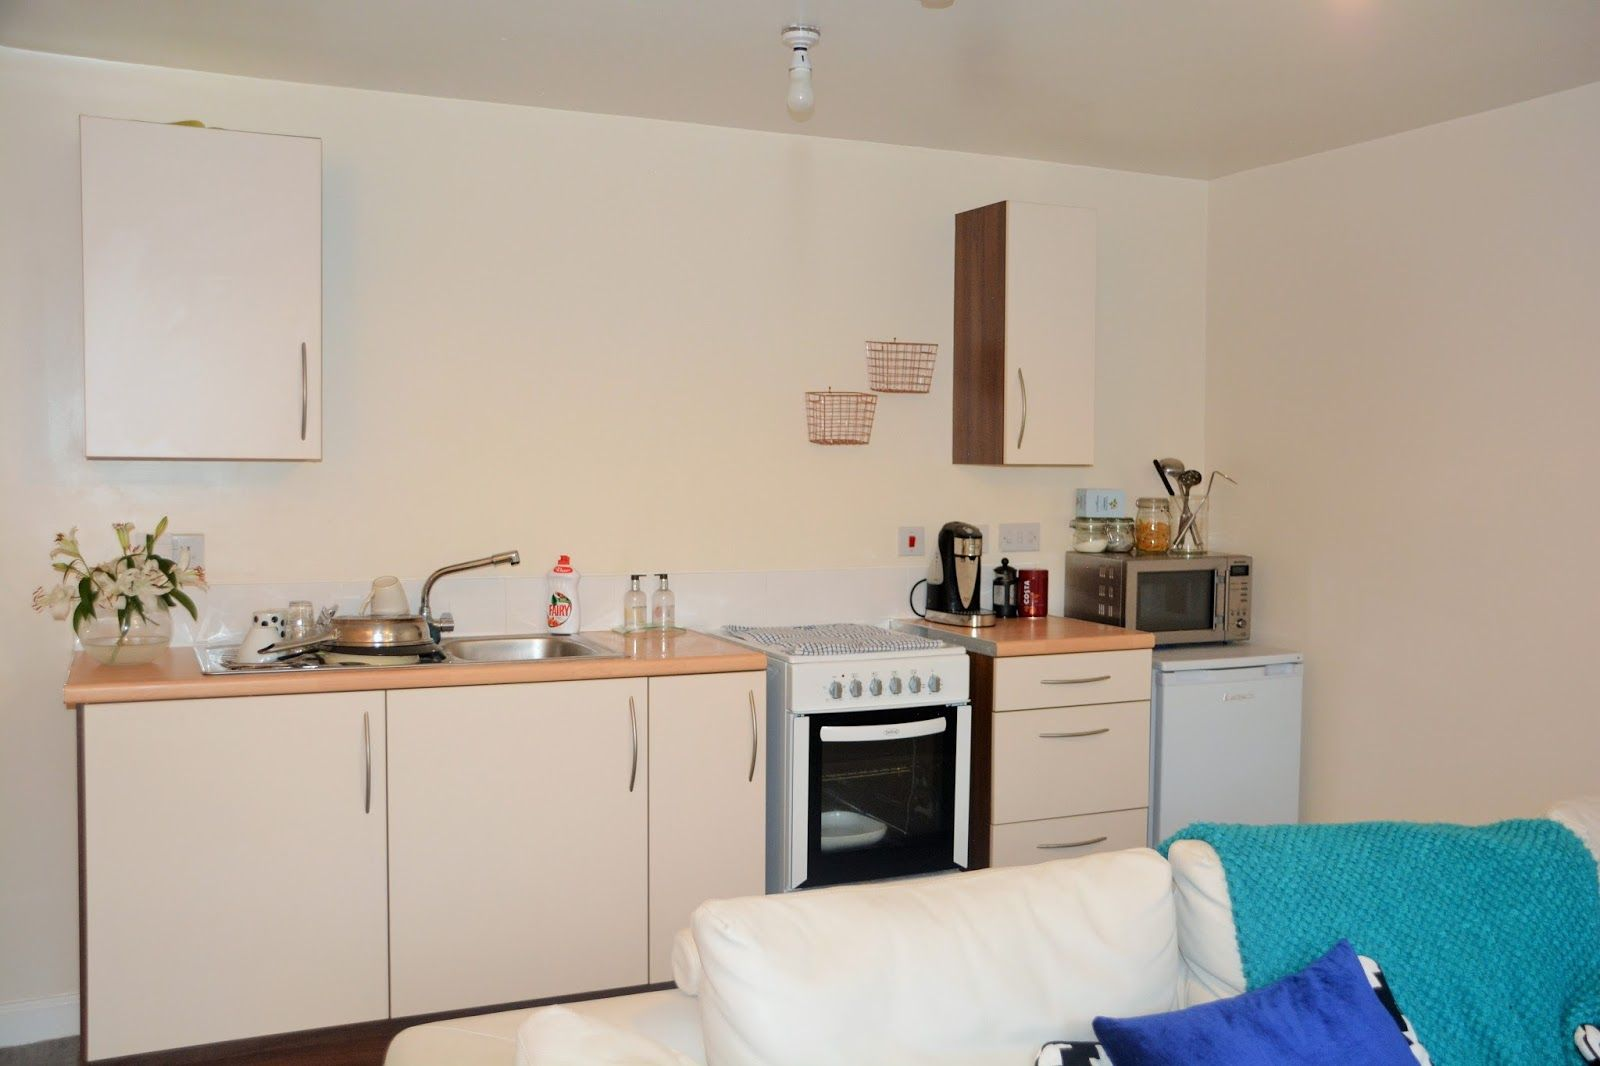 My Kitchen Makeover With D-C-Fix Part 1- From The Begining* - BIN ...